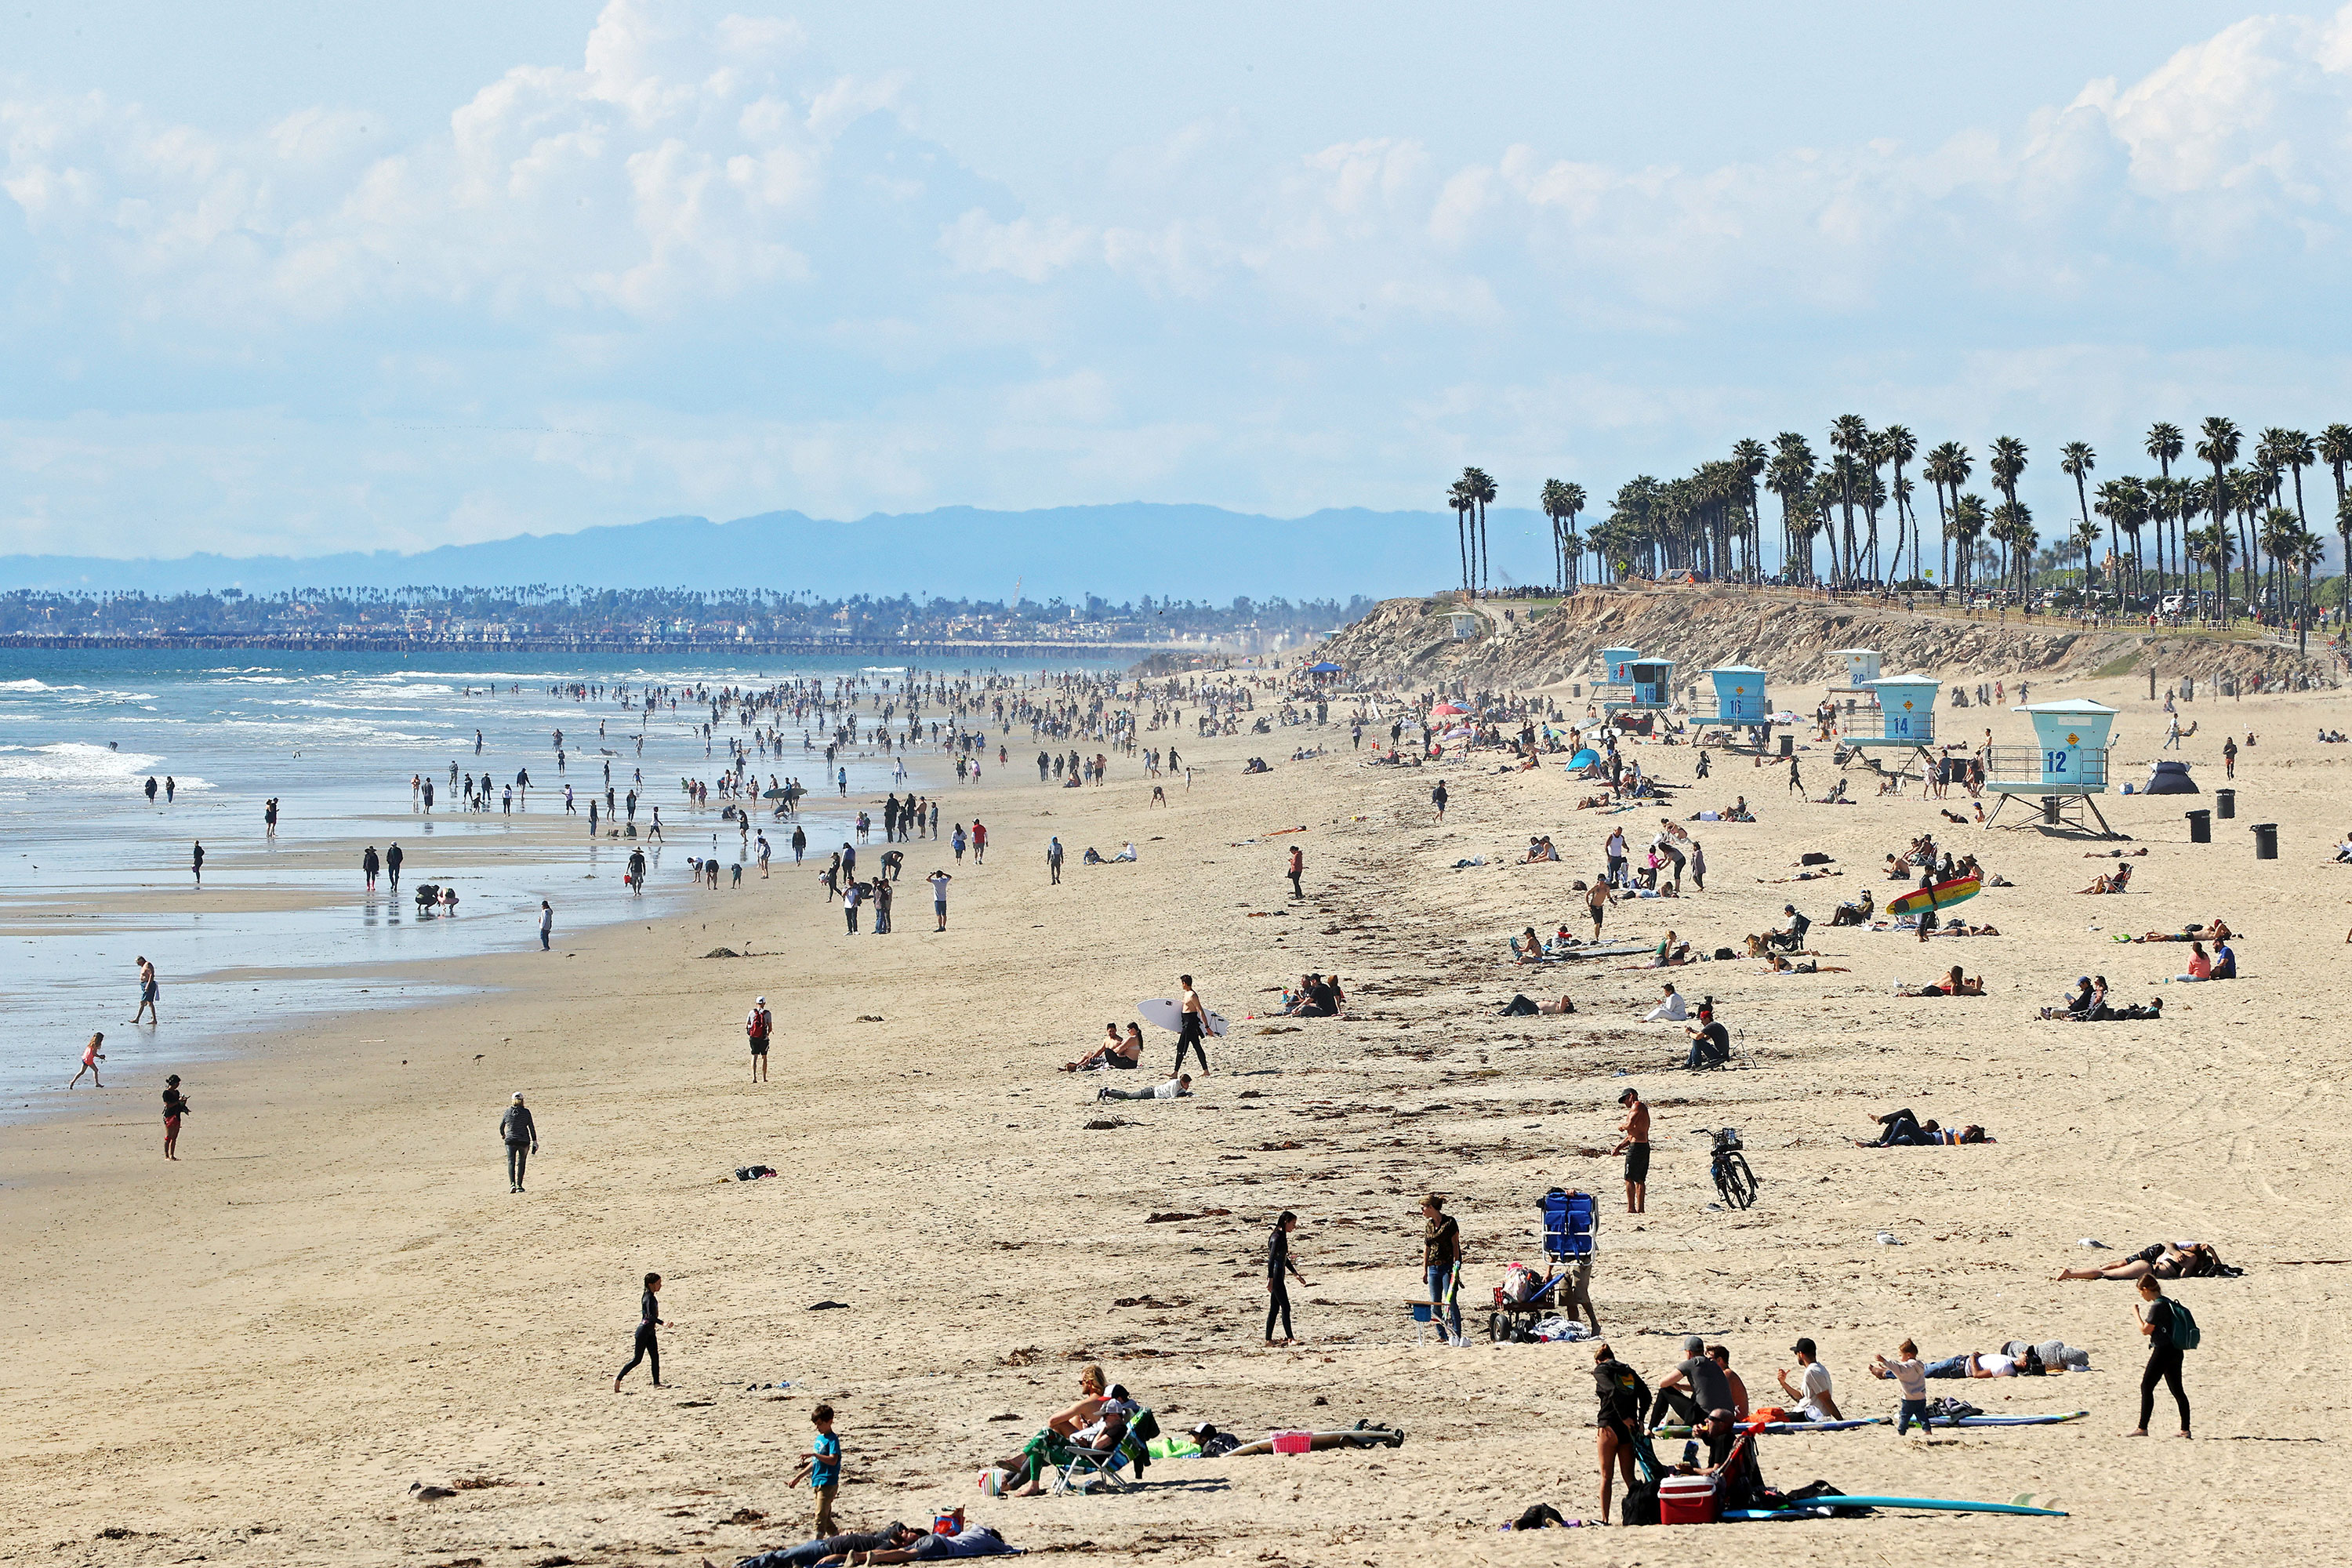 People are seen on the beach in Huntington Beach, California on March 21.